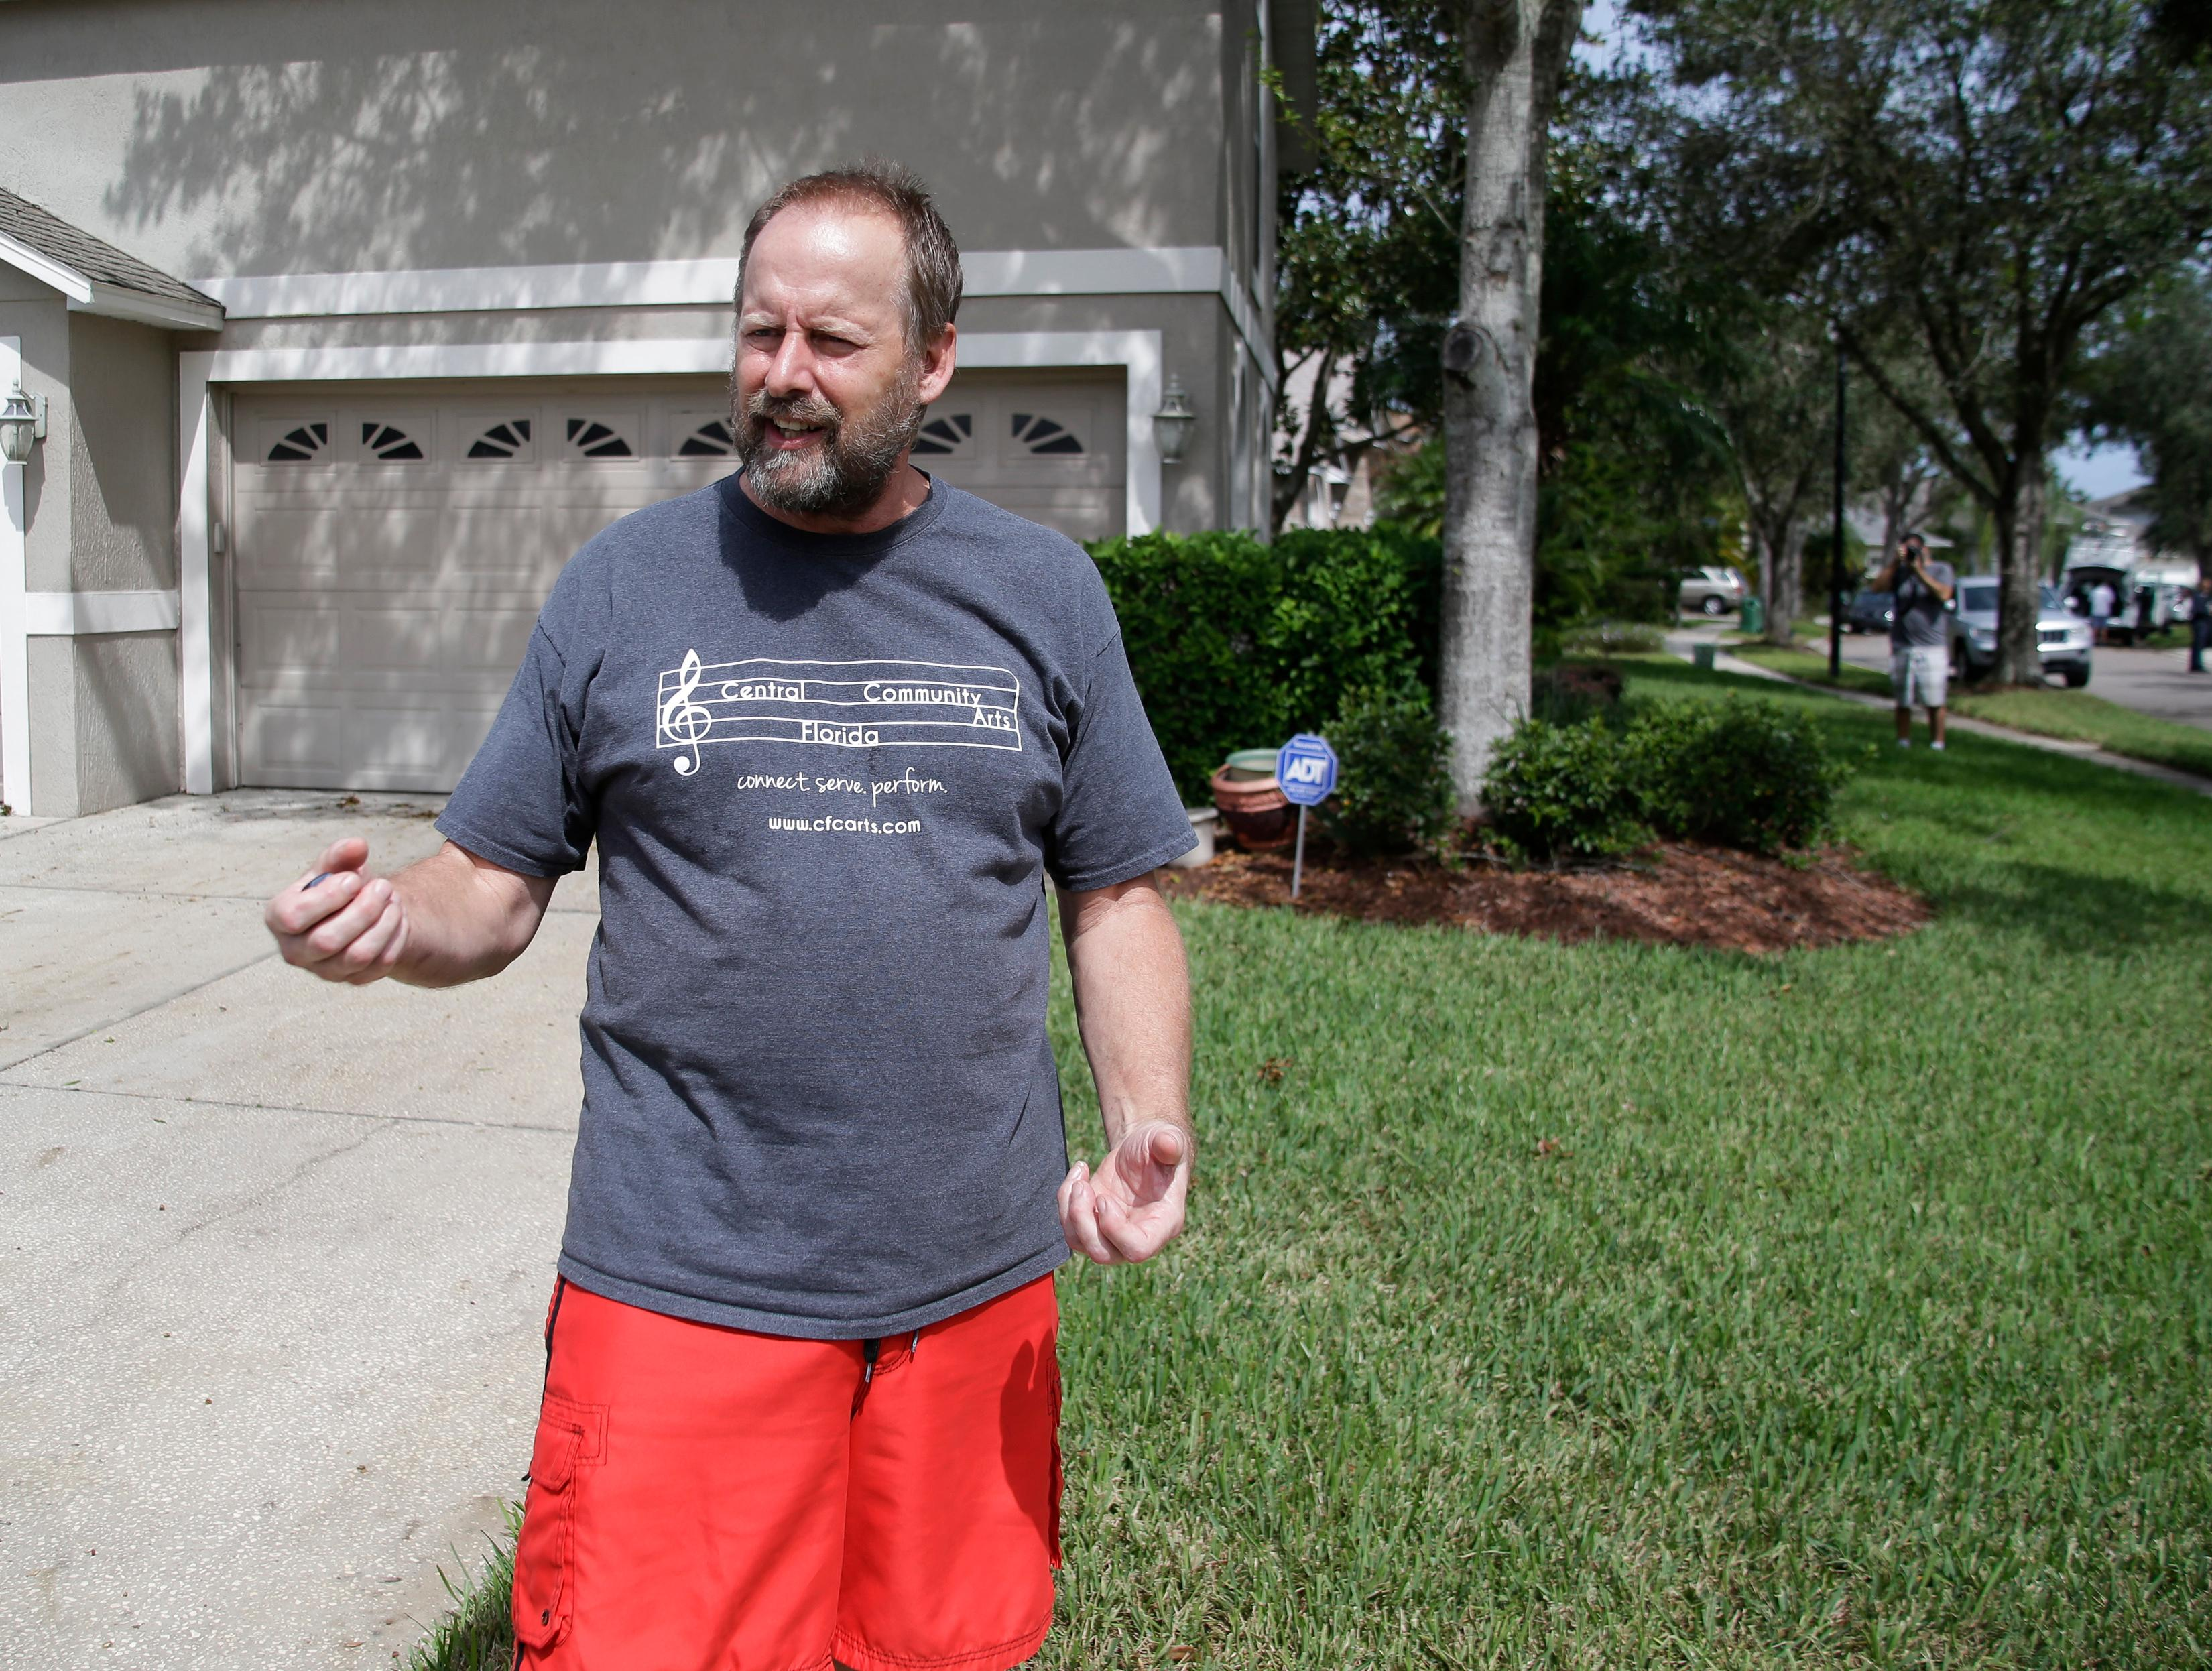 "Eric Paddock, brother of Las Vegas gunman Stephen Paddock, speaks to reporters near his home, Monday, Oct. 2, 2017, in Orlando, Fla. Paddock told the Orlando Sentinel: ""We are completely dumbfounded. We can't understand what happened."" (AP Photo/John Raoux)"